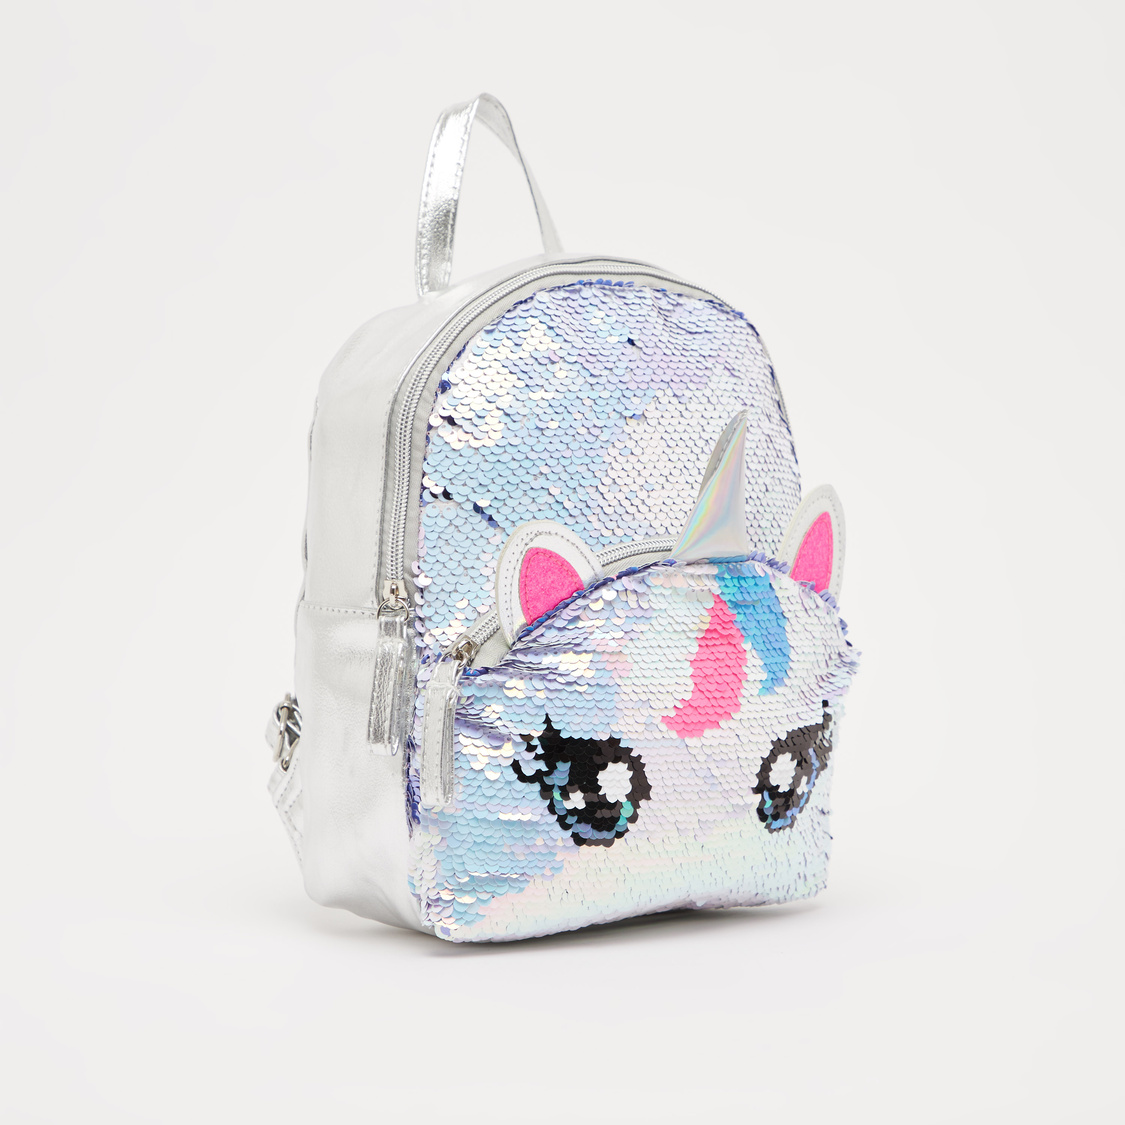 Sequin Detail Backpack with Adjustable Straps and Zip Closure